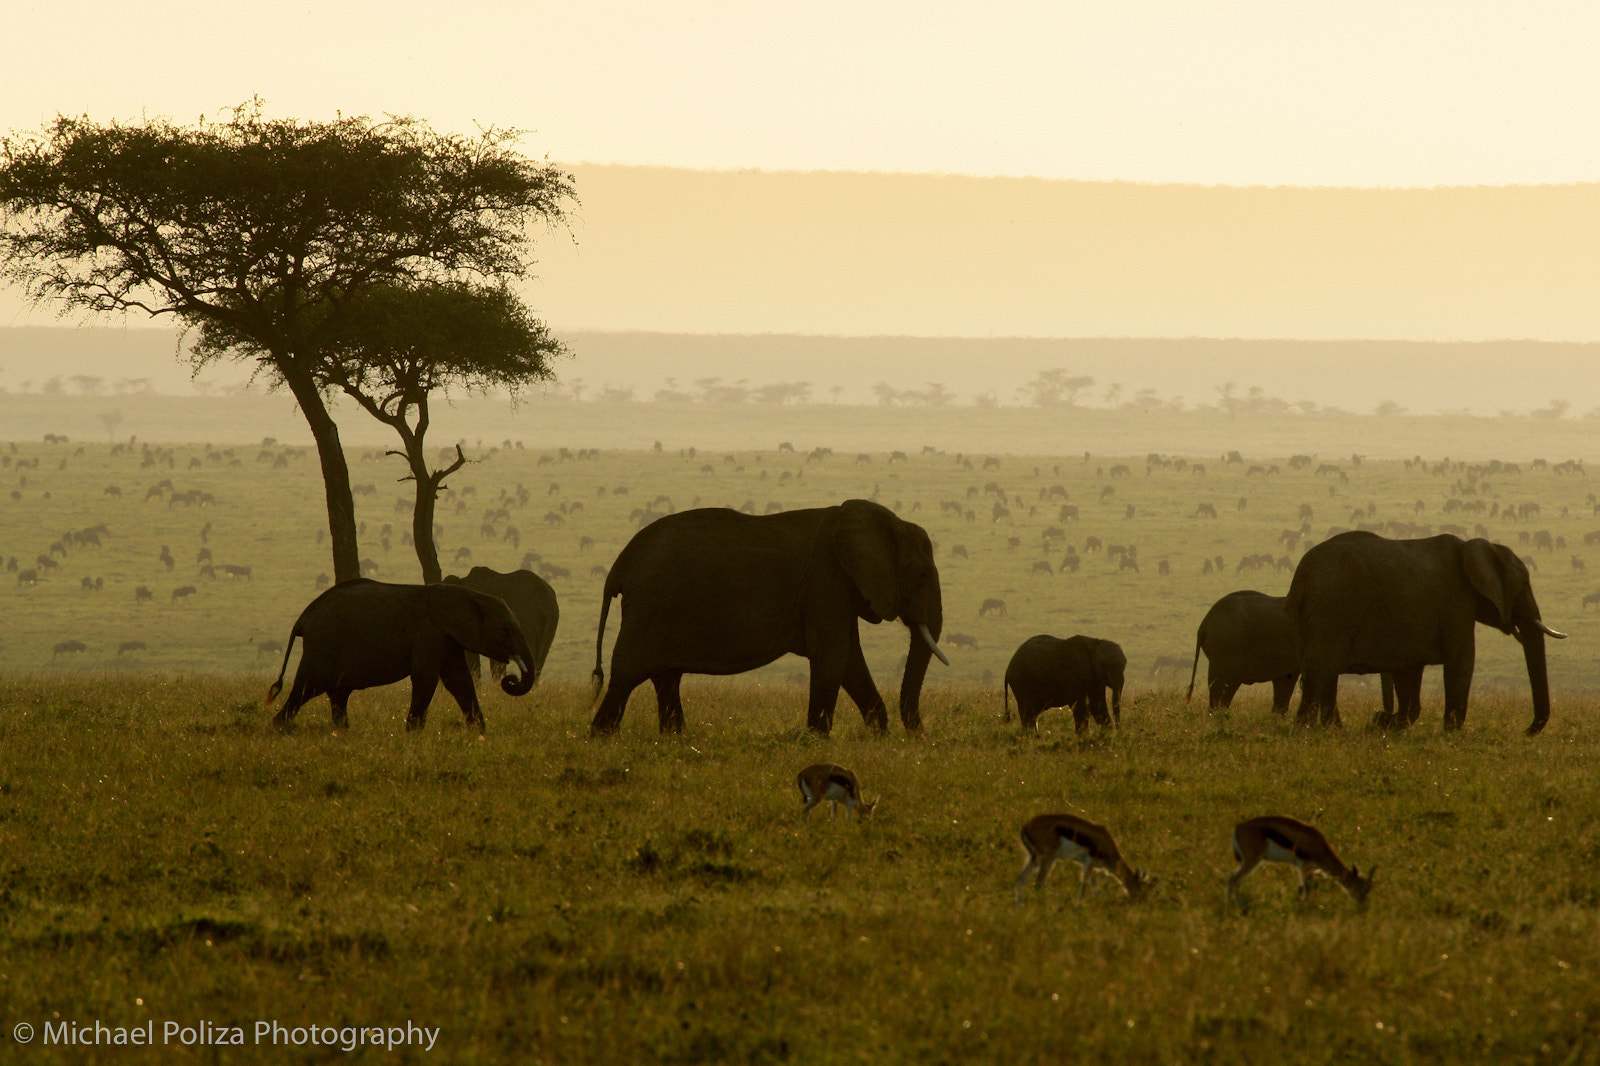 Photograph Elephants in Morning Mist by Michael Poliza on 500px